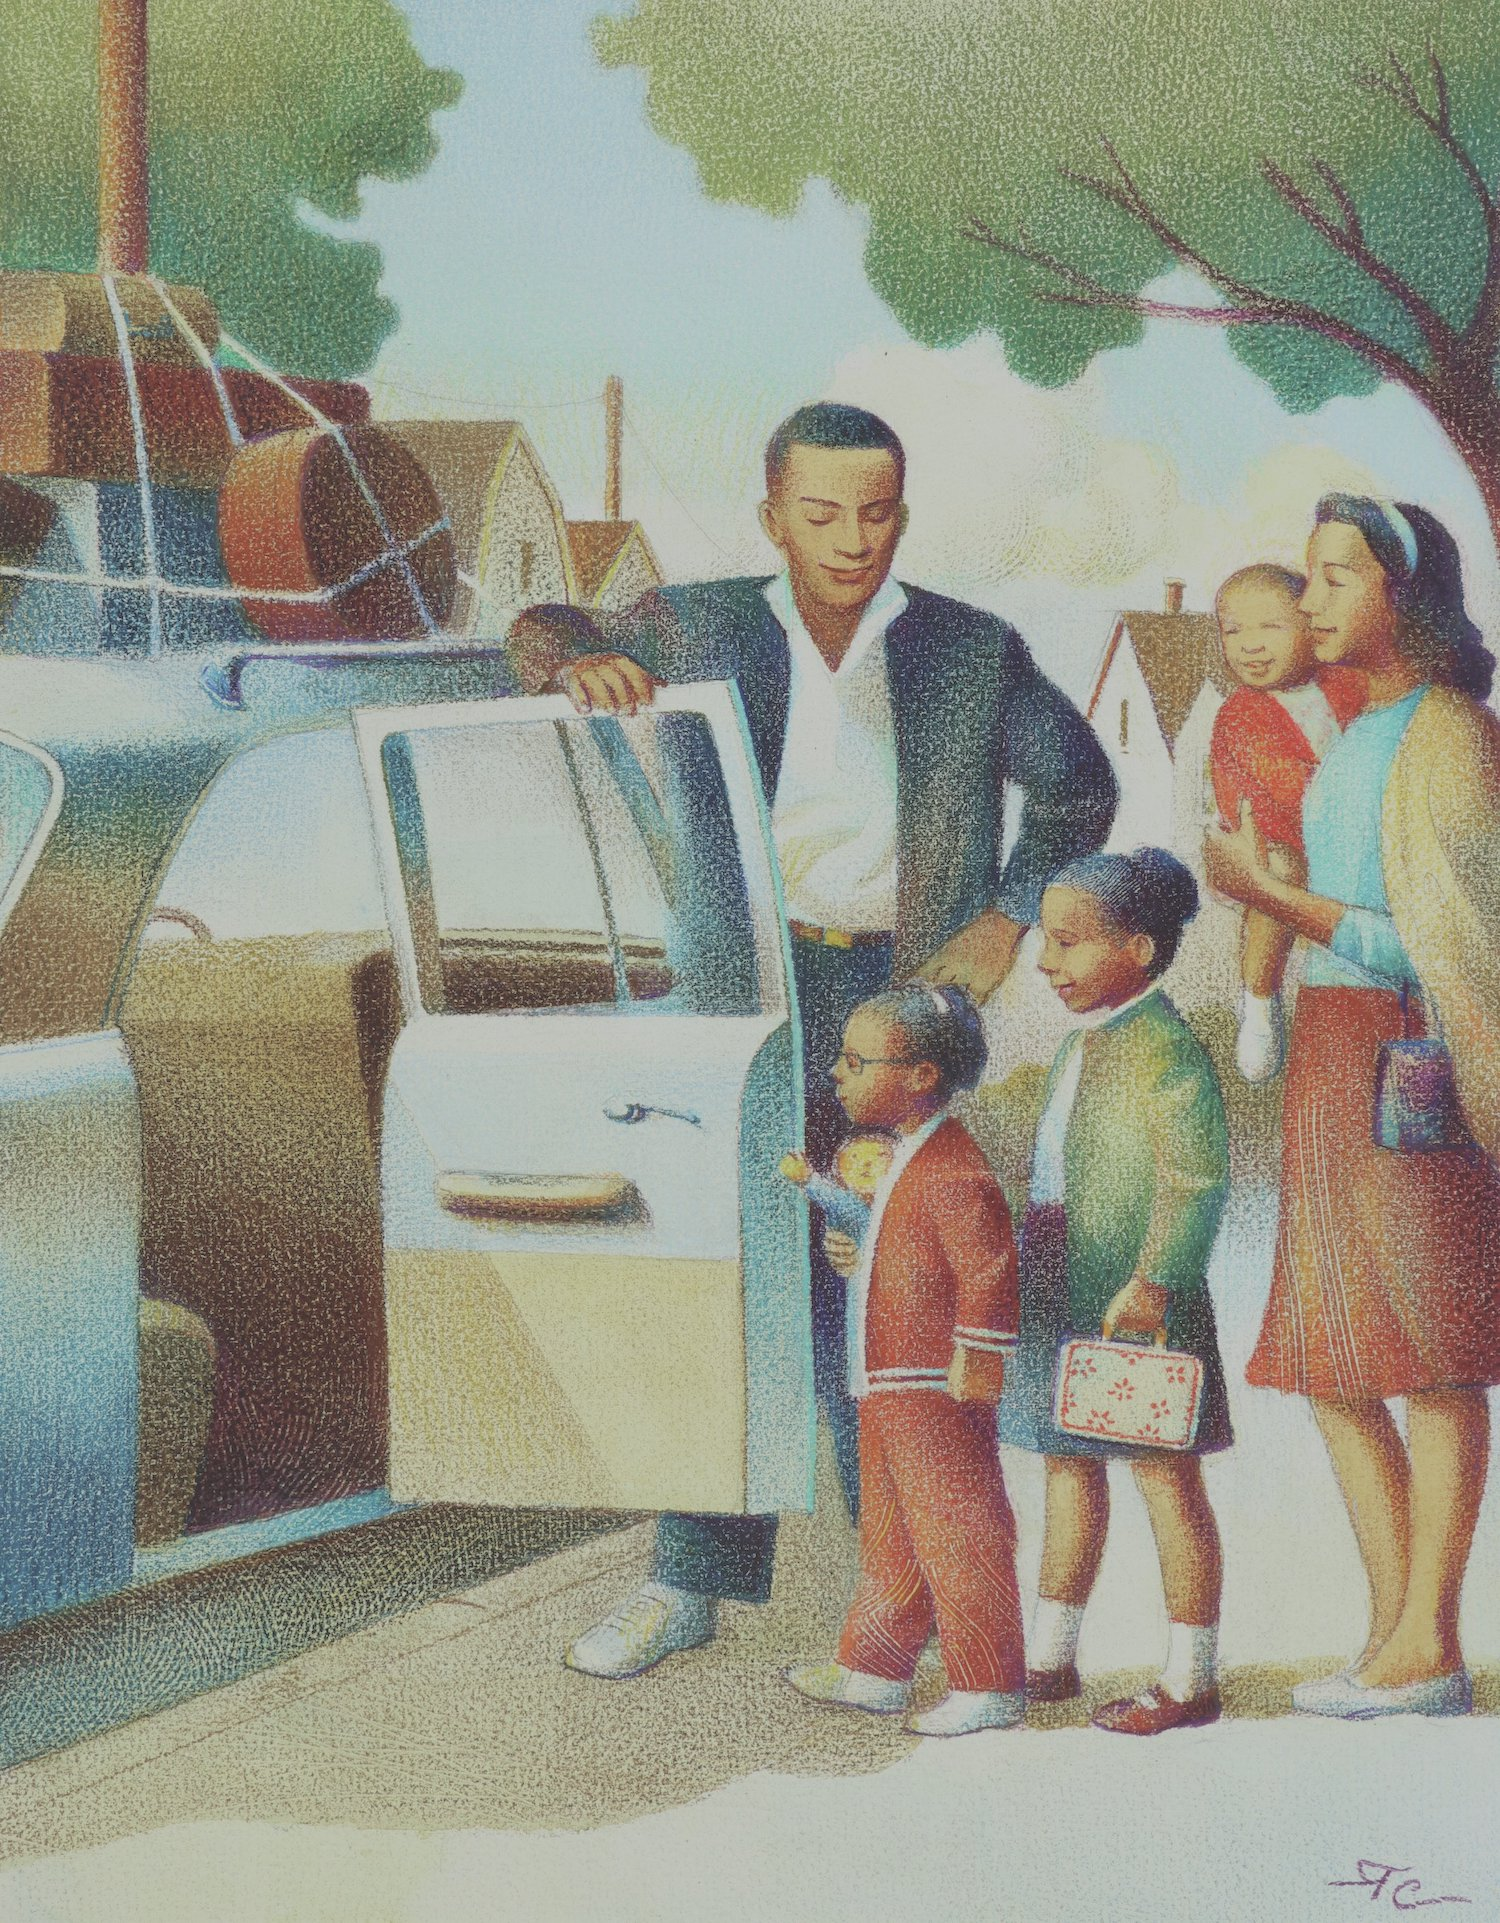 Civil rights for kids travel recalls the Green Book advising safe spots for Negro families.